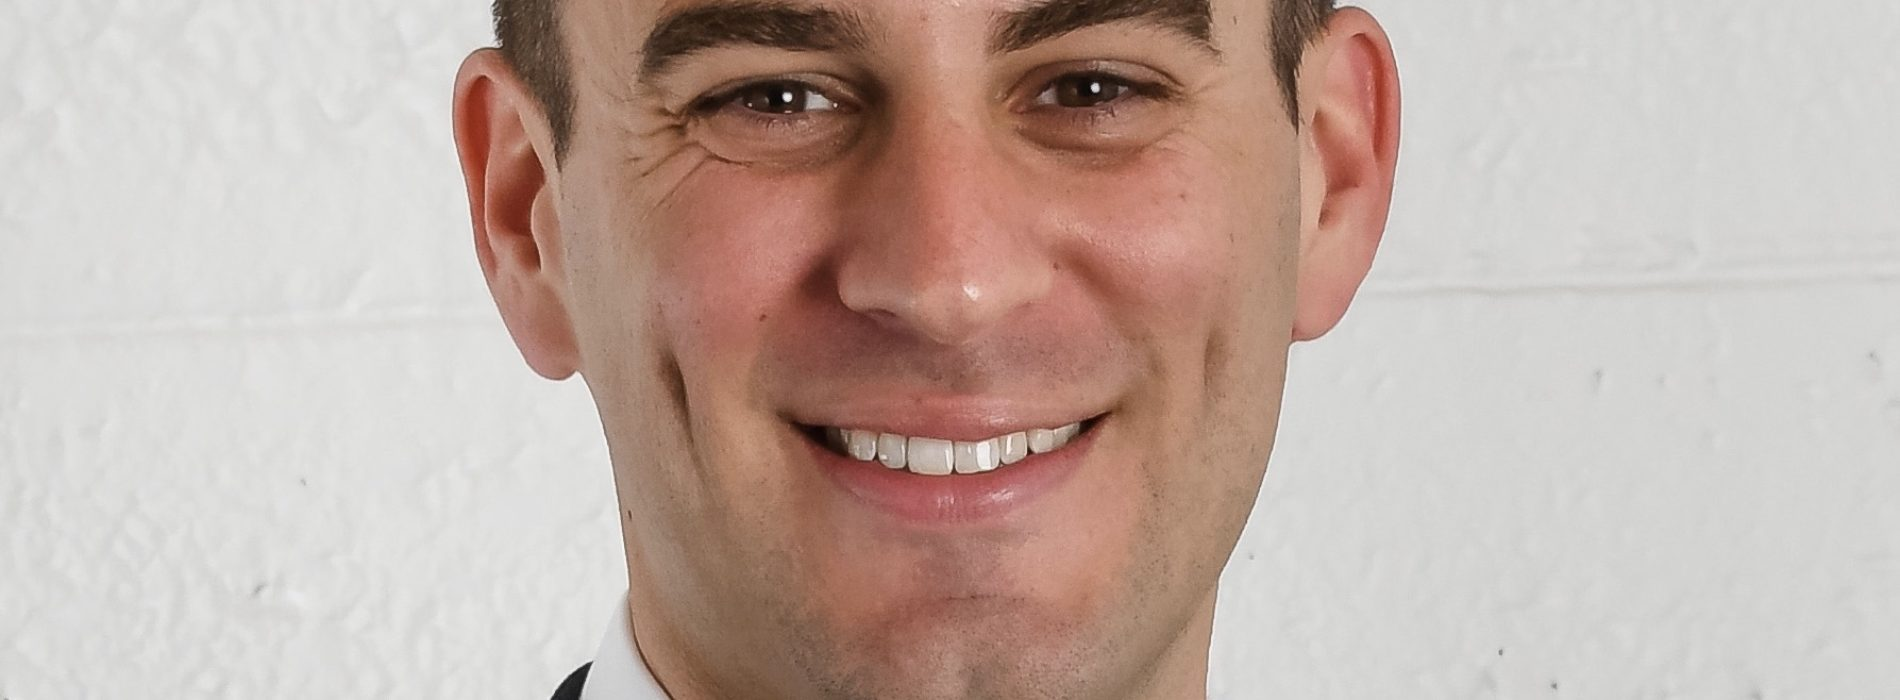 Indianapolis Business Leader & Education Advocate Josh Owens Seeks New Role: Indiana Governor